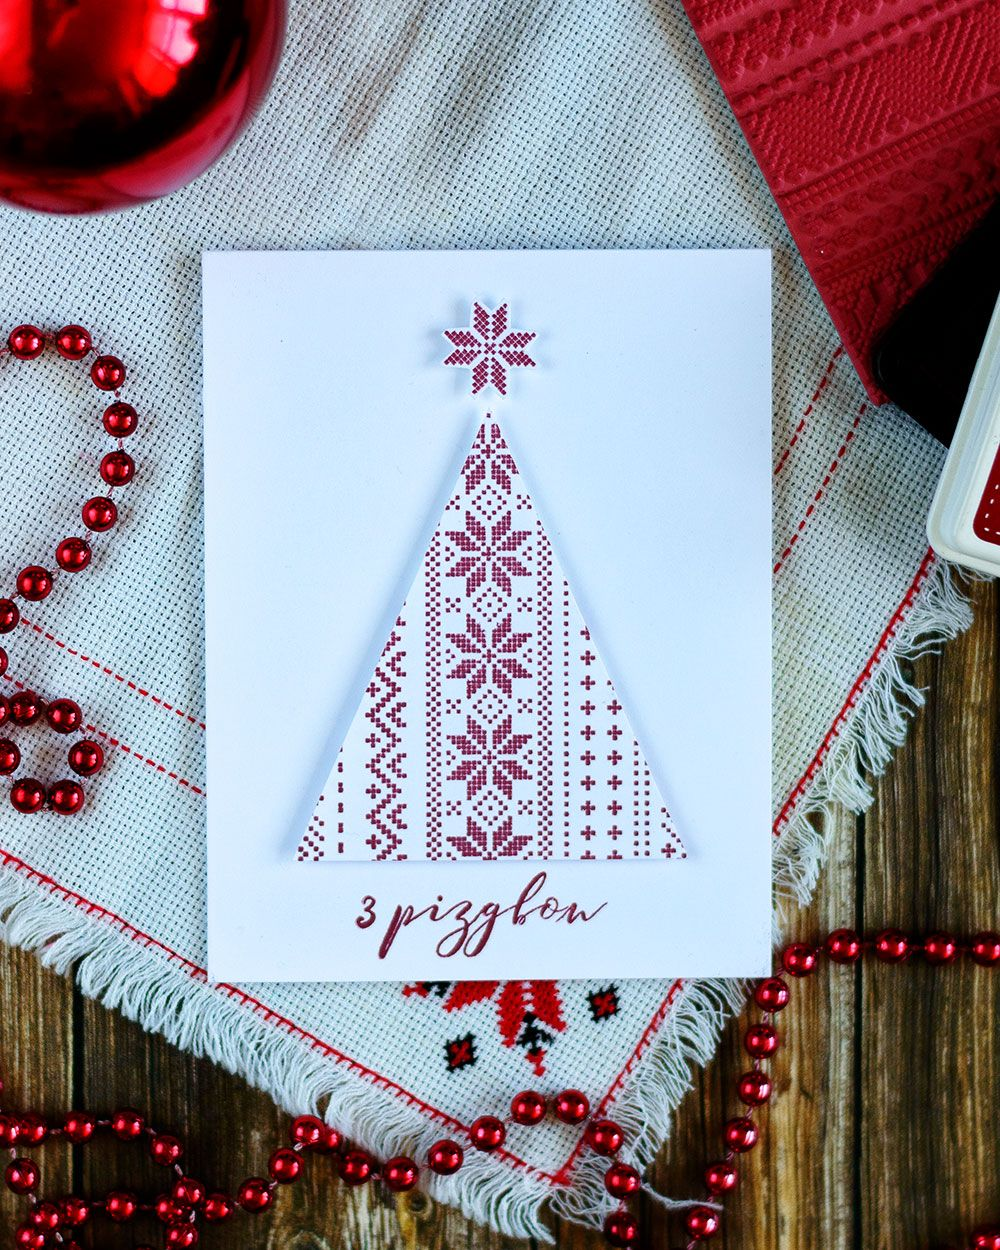 Ukrainian christmas card featuring embroidery christmas tree for ukrainian christmas card featuring embroidery christmas tree for simon says stamp world cardmaking day details m4hsunfo